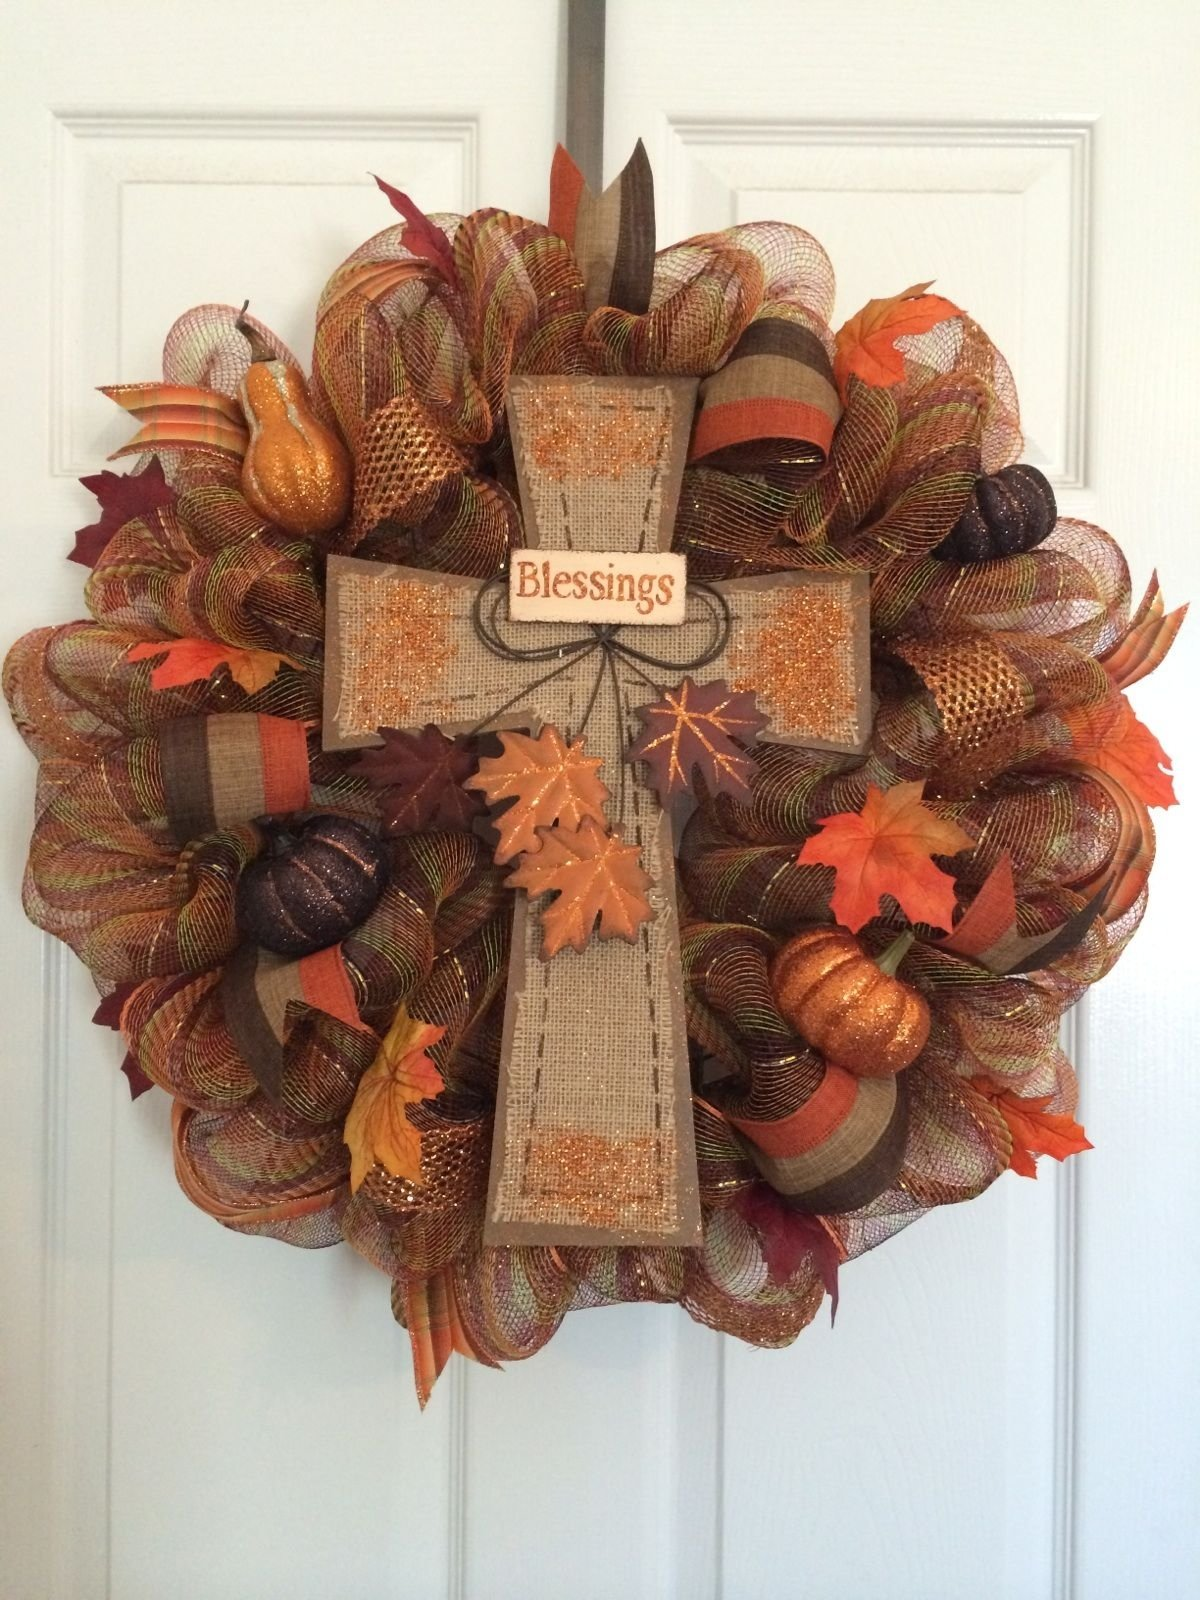 10 Attractive Deco Mesh Fall Wreath Ideas 55 awesome wreaths to adorn your front door fall deco mesh